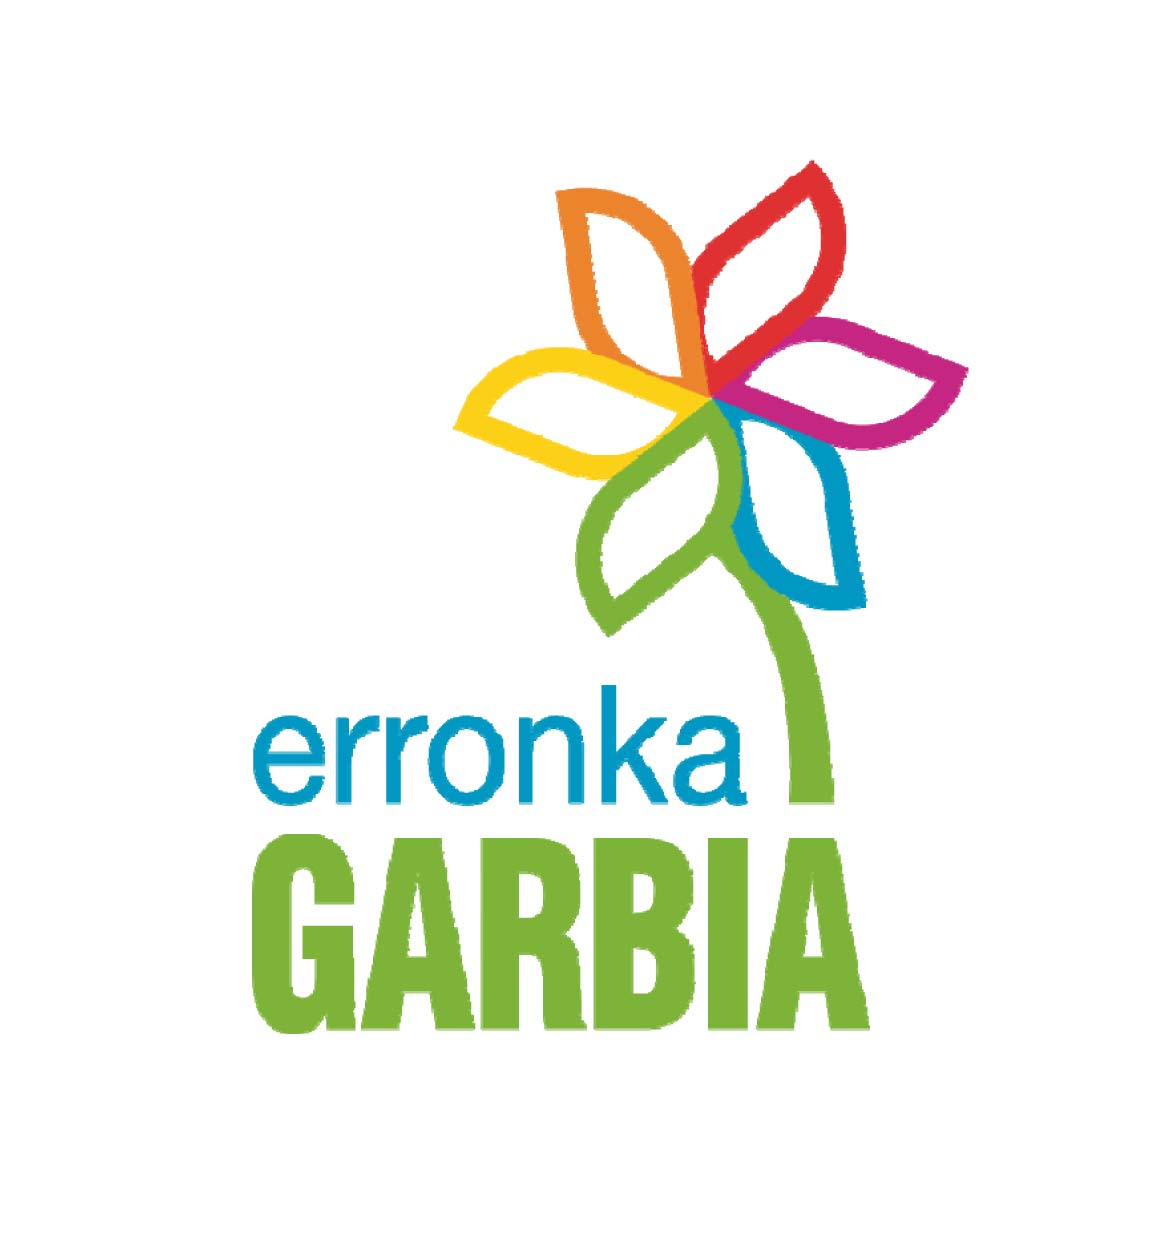 sello_erronka_garbia.jpg